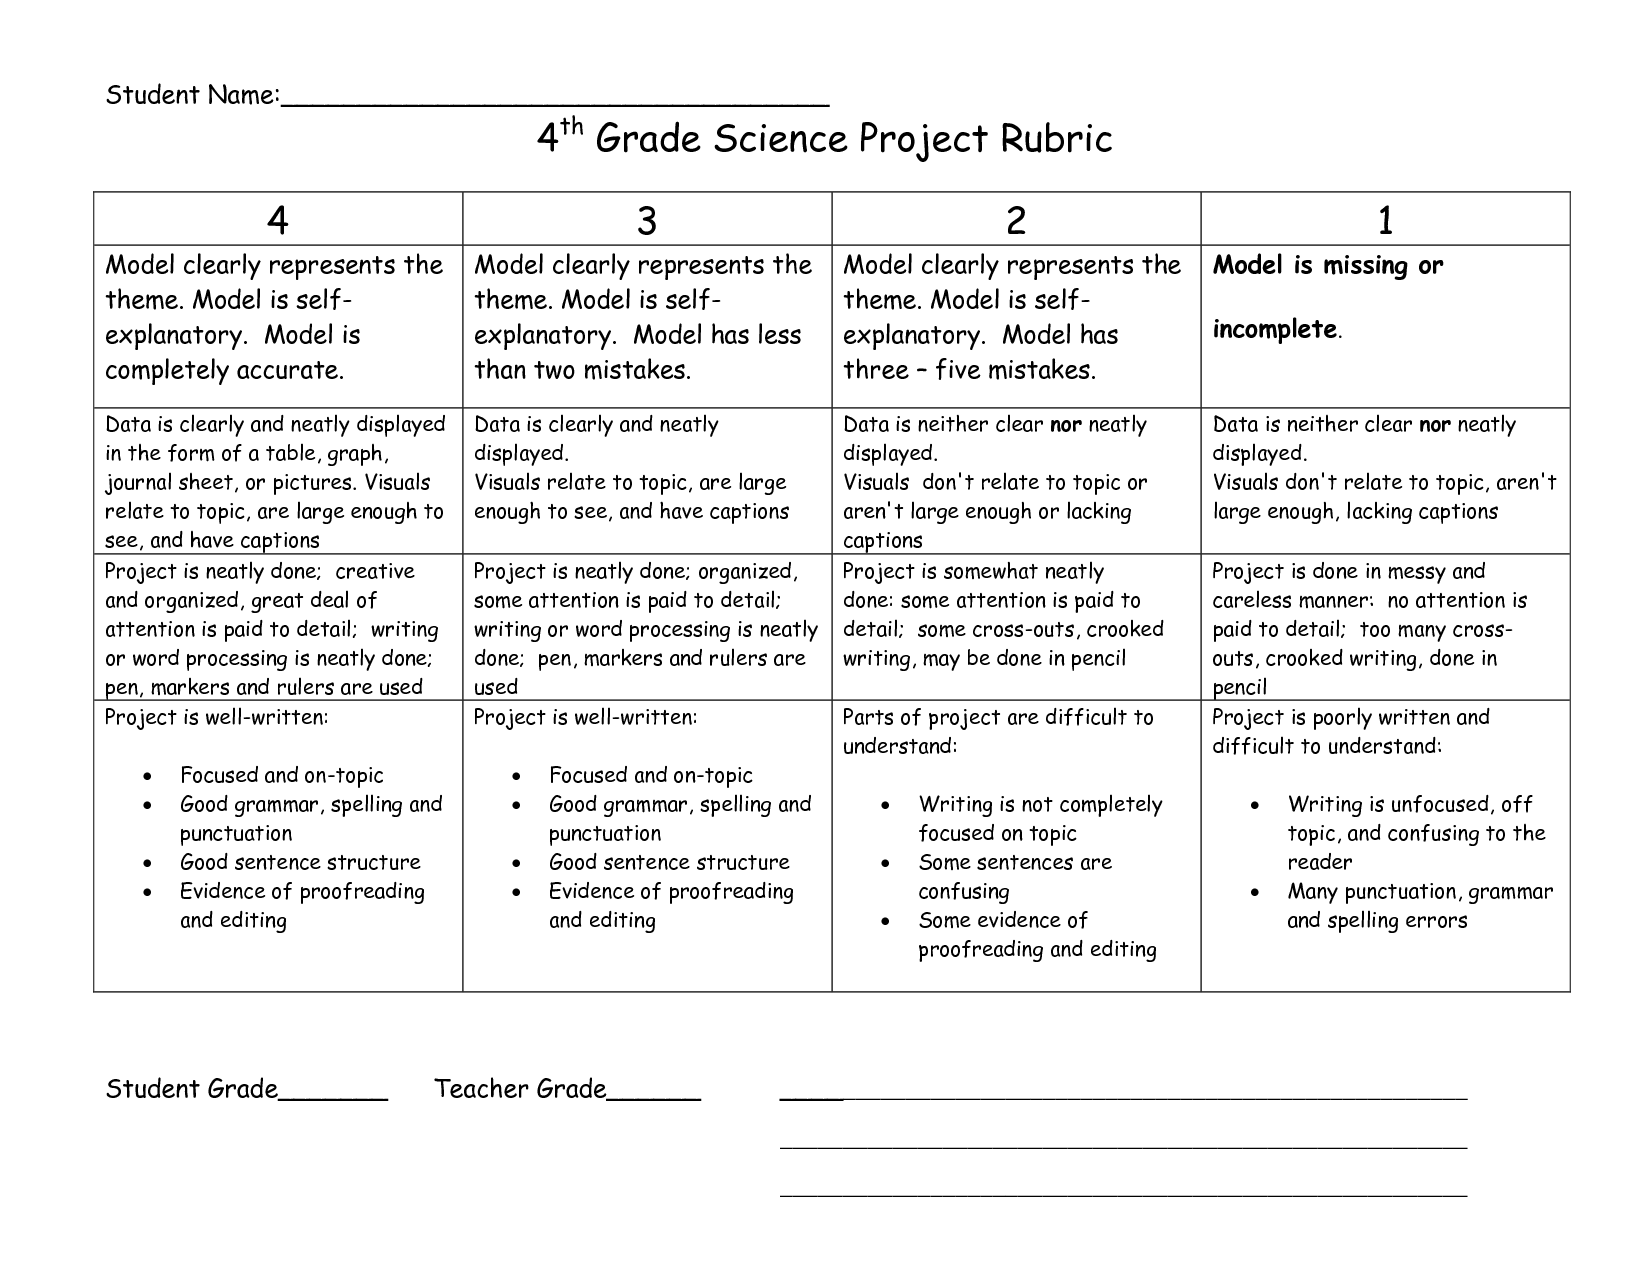 4th grade science project rubric httpsyoutubechannel 4th grade science project rubric httpsyoutubechannel ccuart Gallery